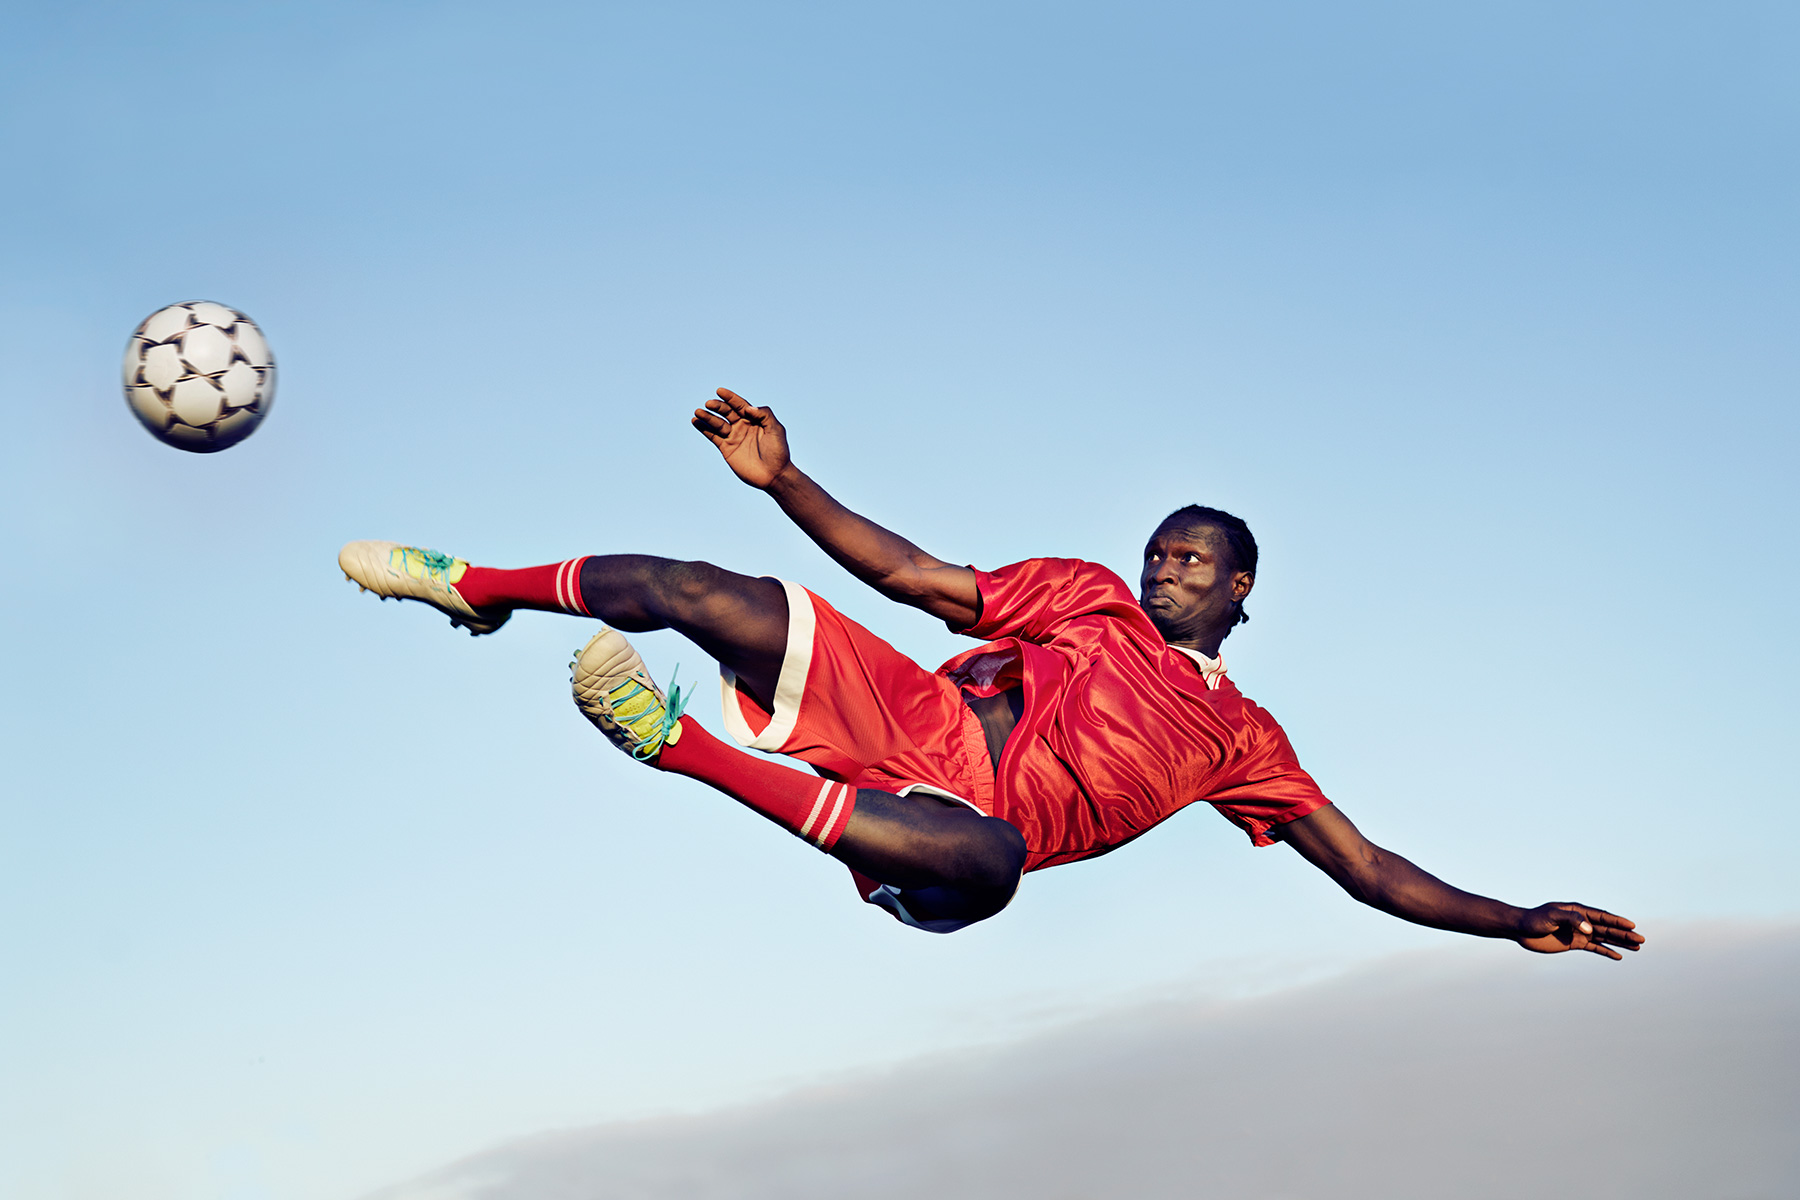 Soccer player jumping & kicking ball in the air (football)